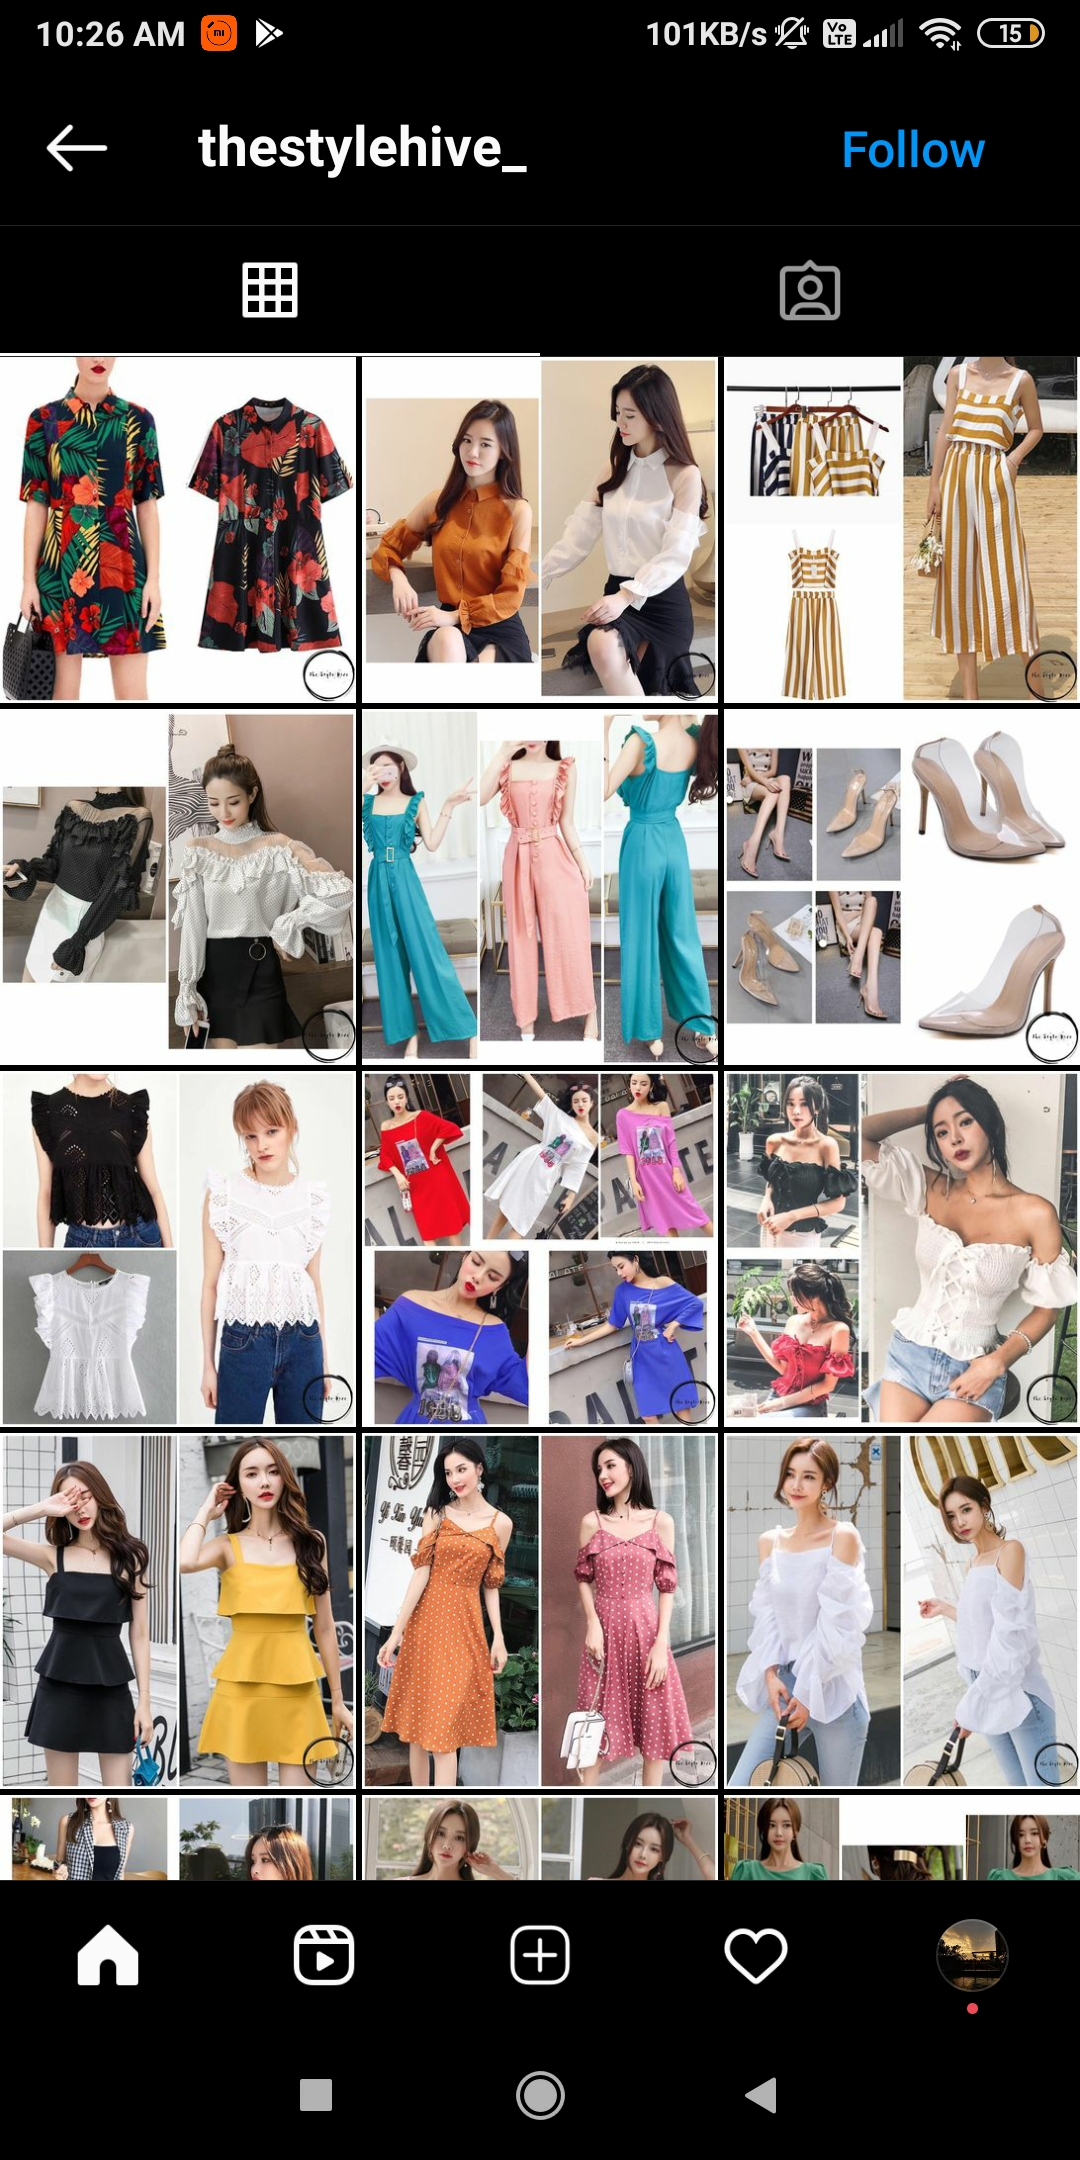 @thestylehive   -  thestylehive  - 50+ SHOPPING Instagram ACCOUNTS for Clothes, Shoes, Jewellery 2021